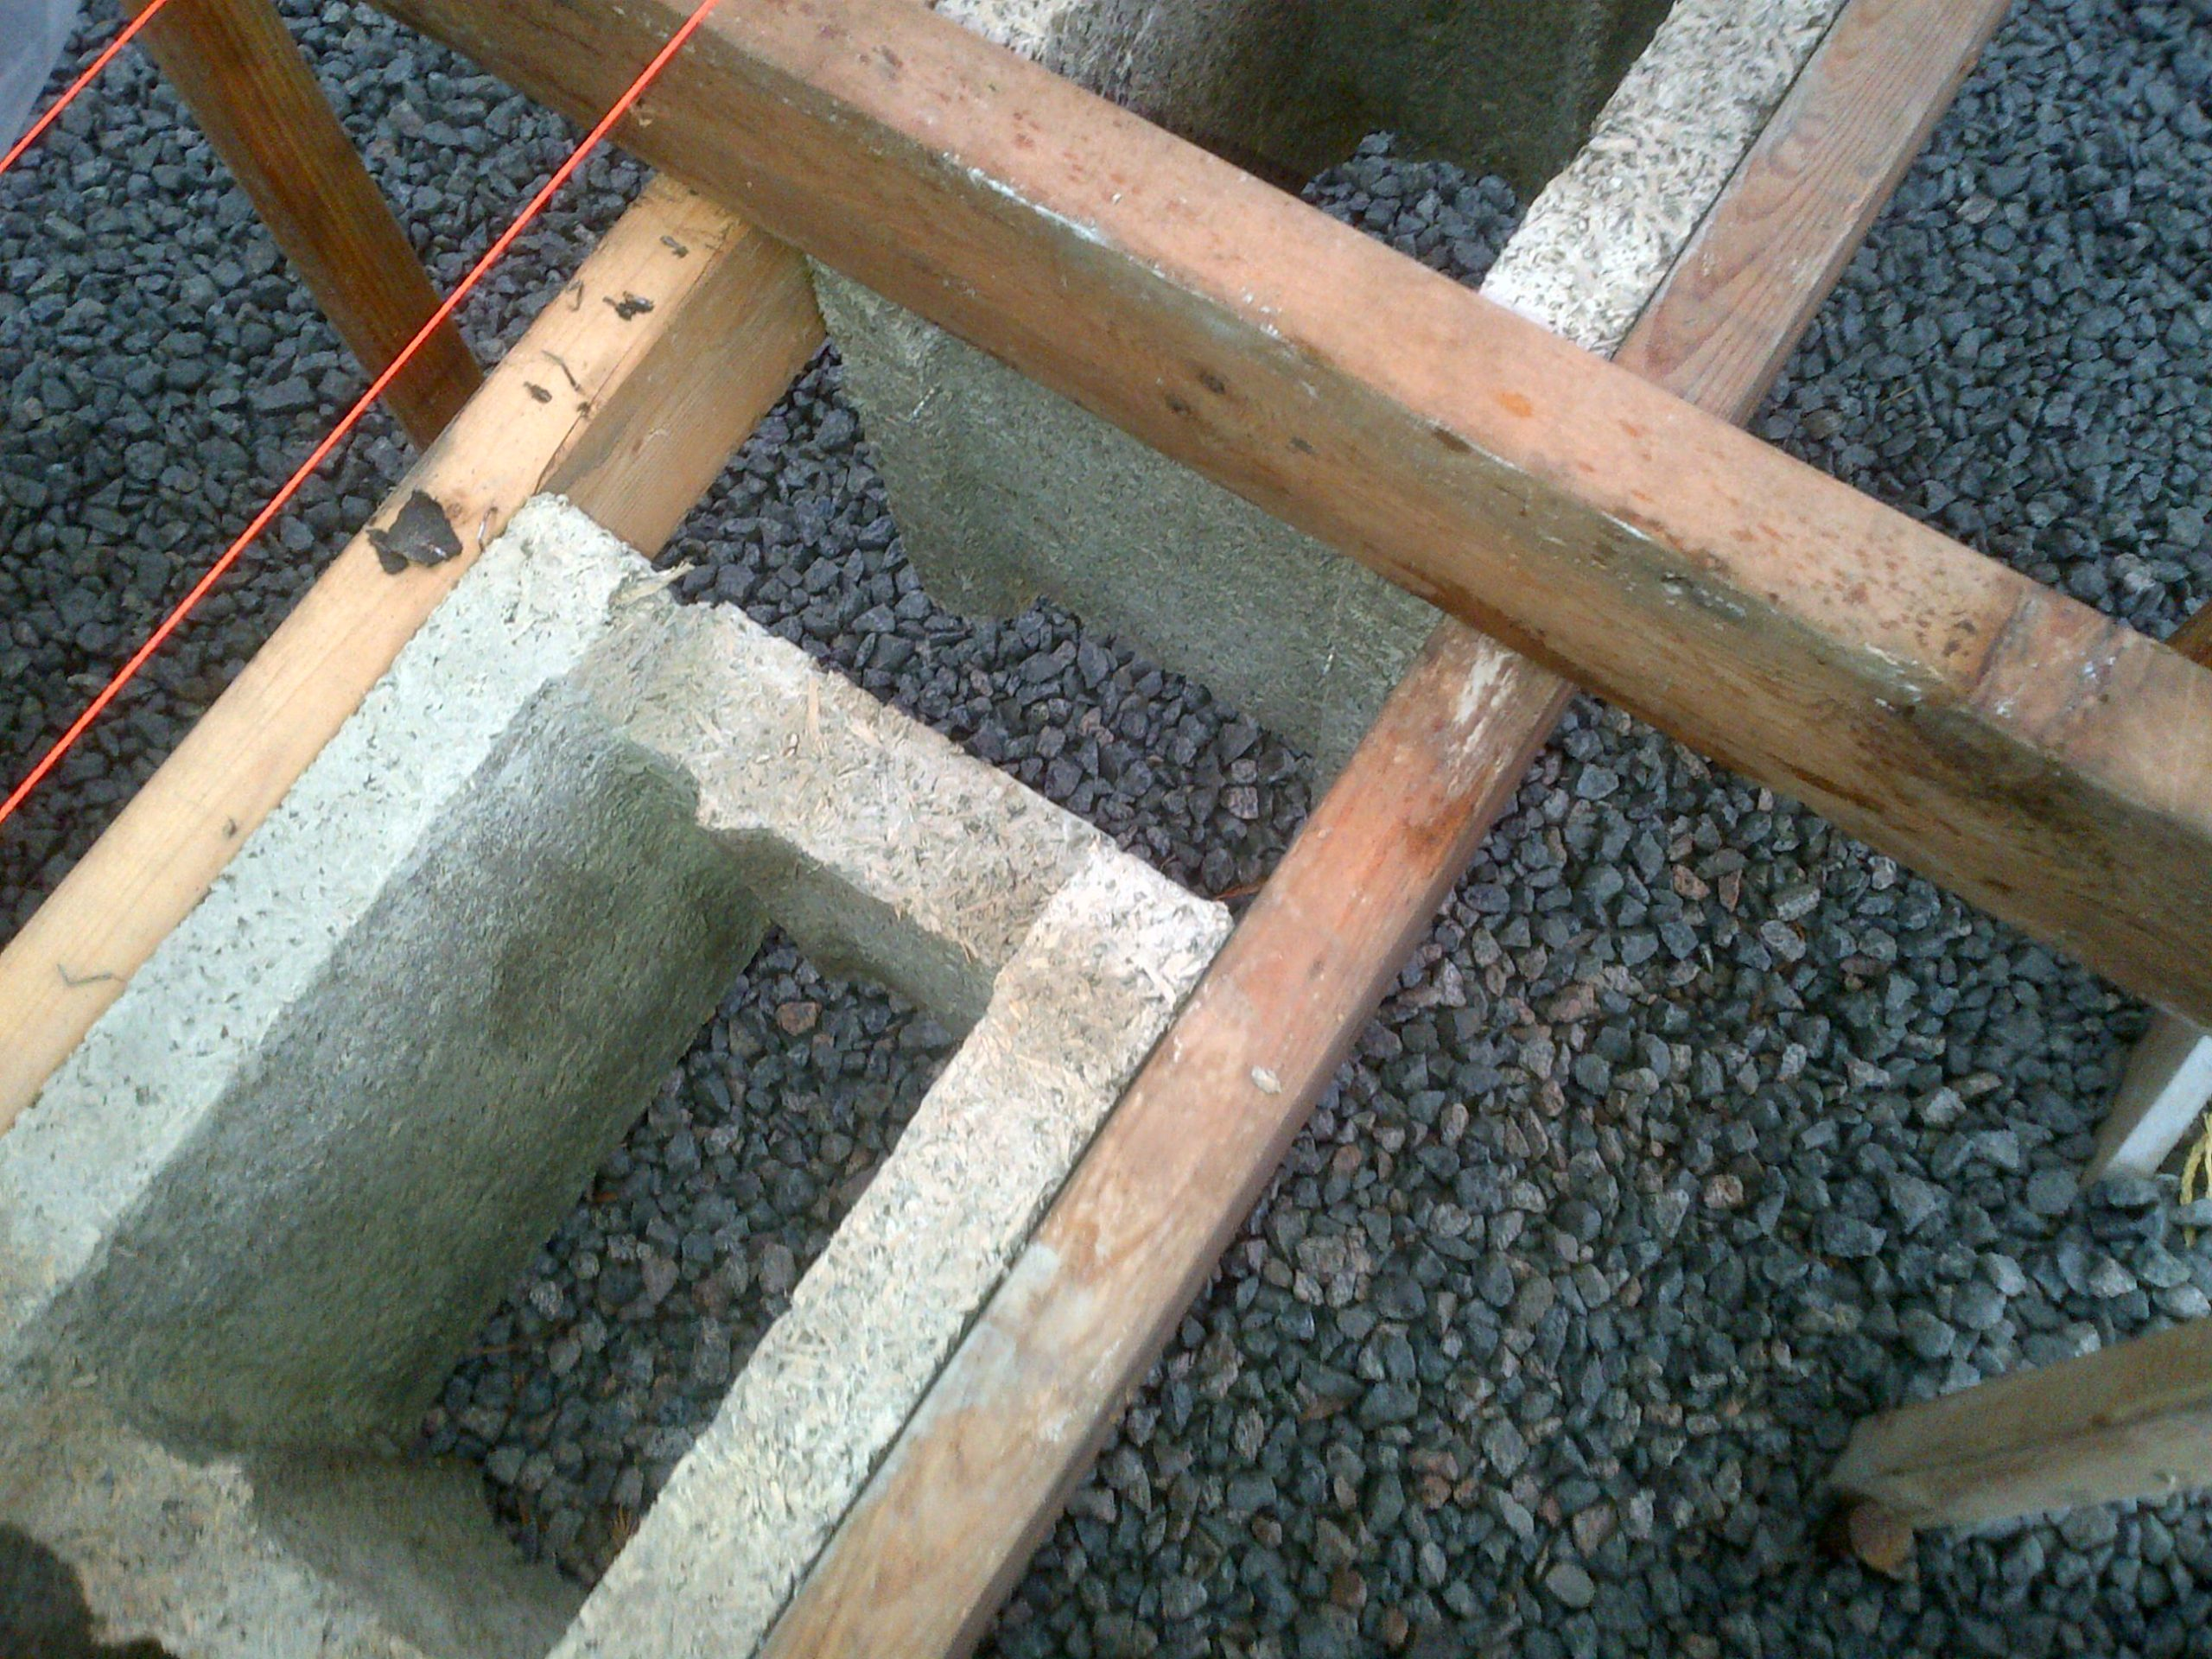 Step 1 - Secure blocks on both sides and measure gap.